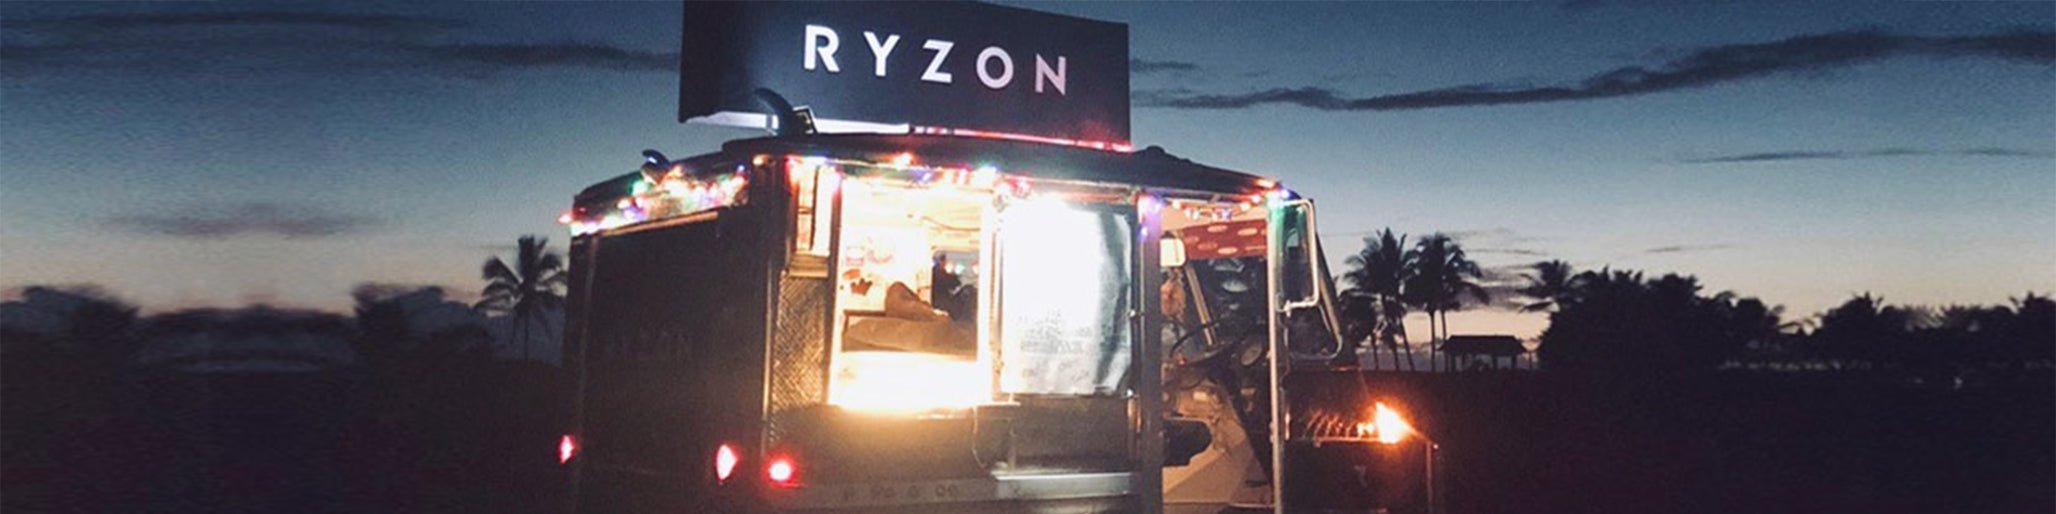 Ryzon Kona – Enduring the elements Header Image